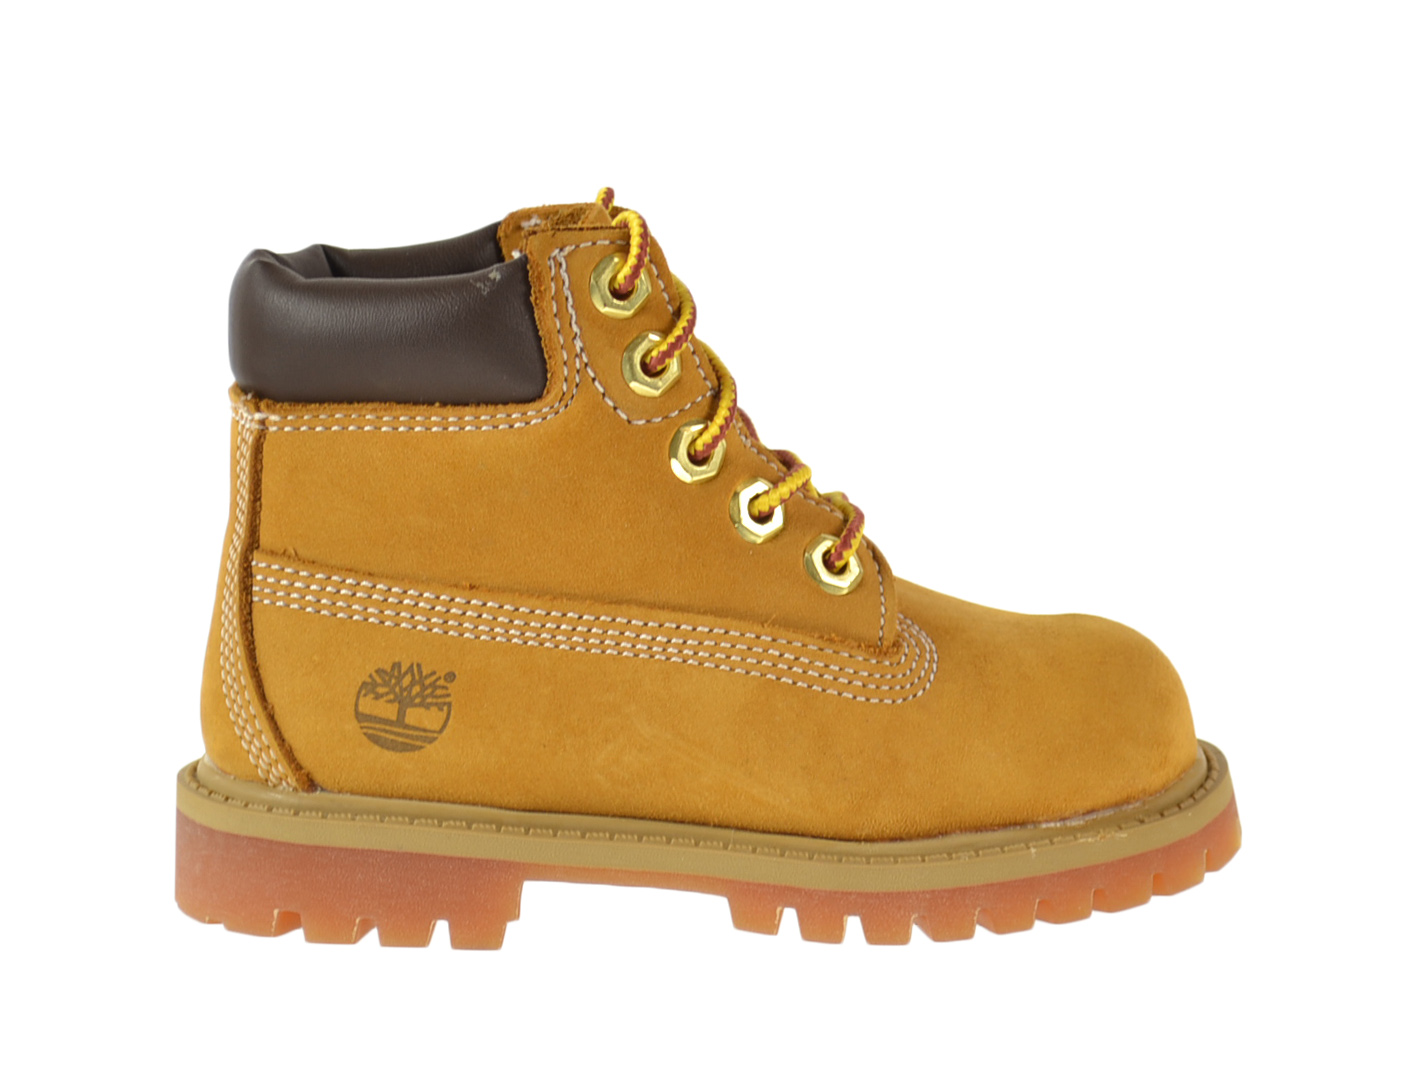 Details about Timberland 6 Inch Premium Infant Boots Wheat 12809